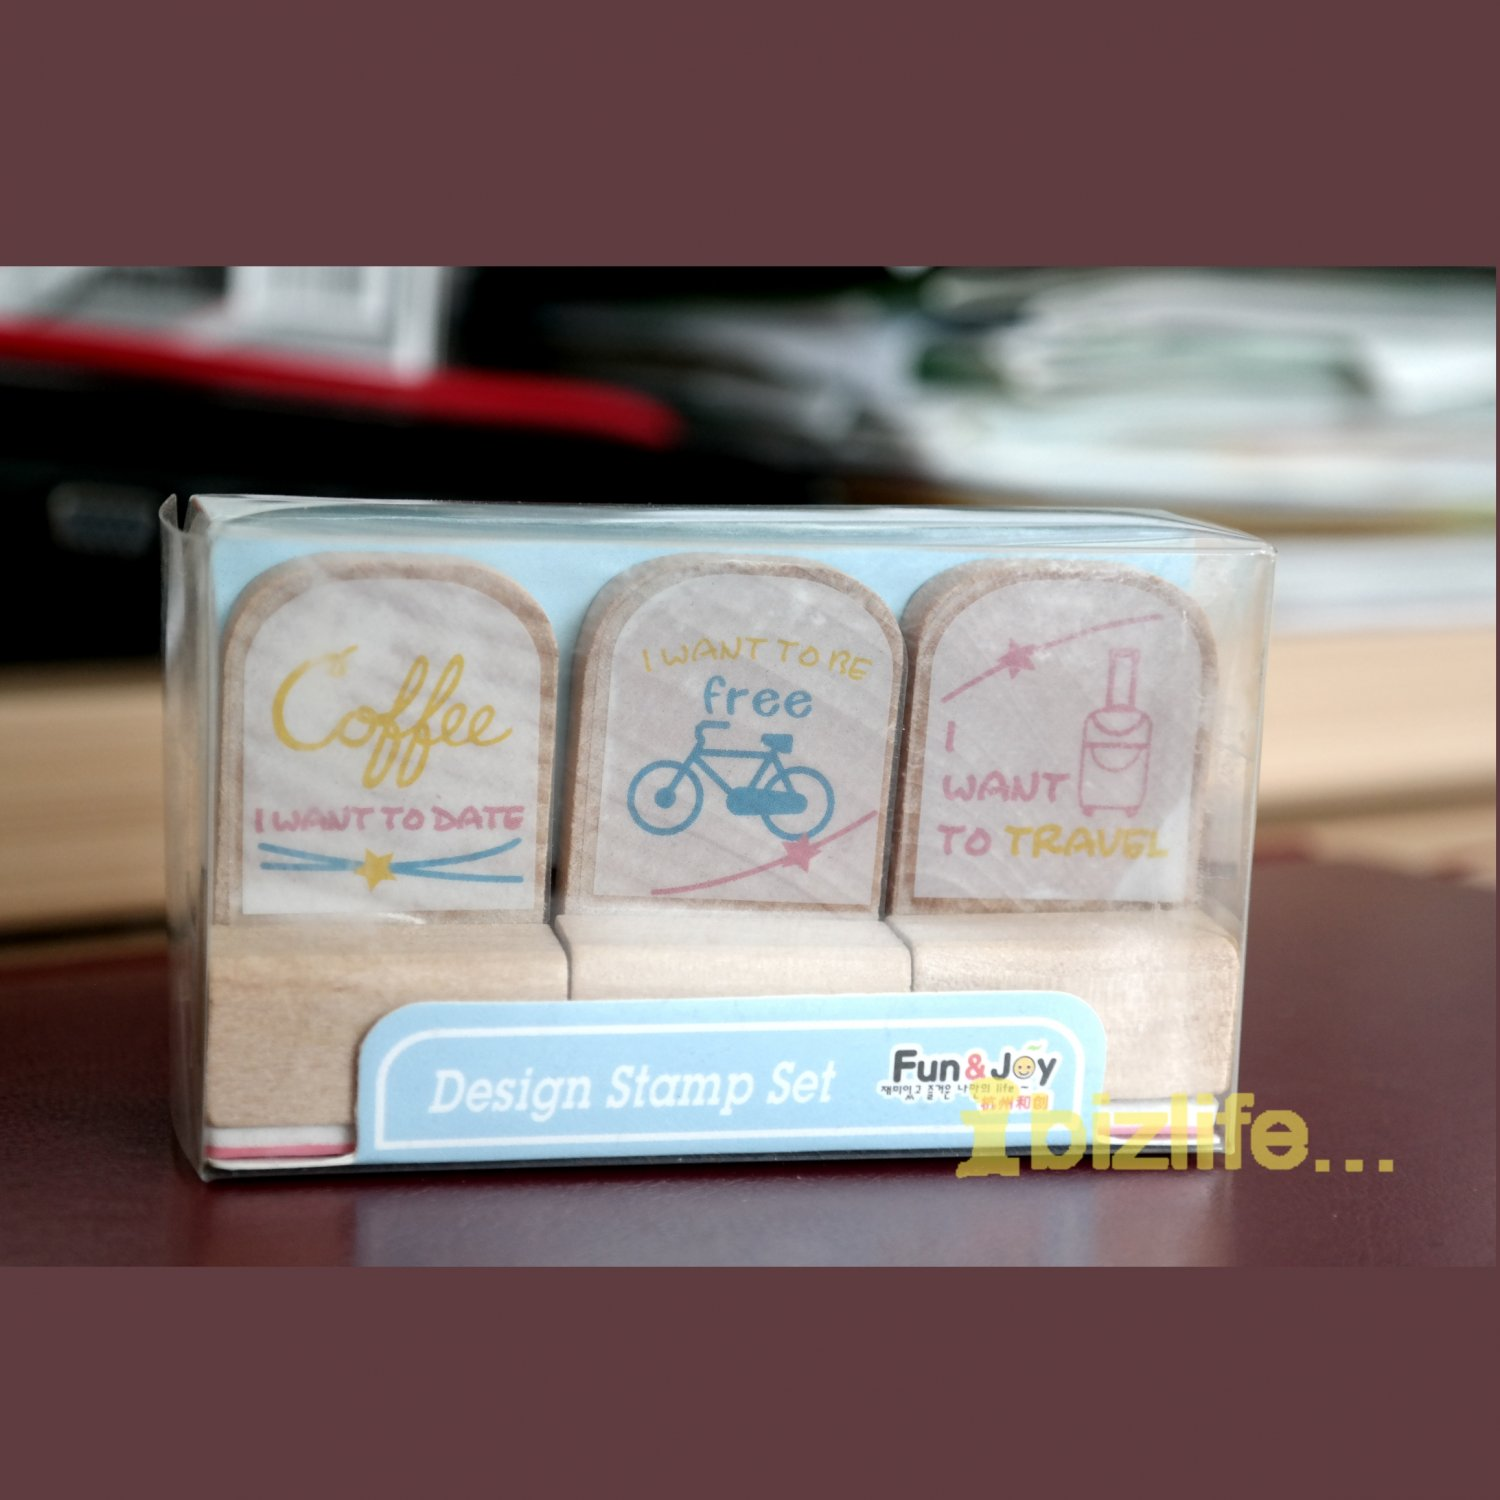 Set of 3 Rubber Stamp in Wooden Block-Want to date/free/travel (WS01)